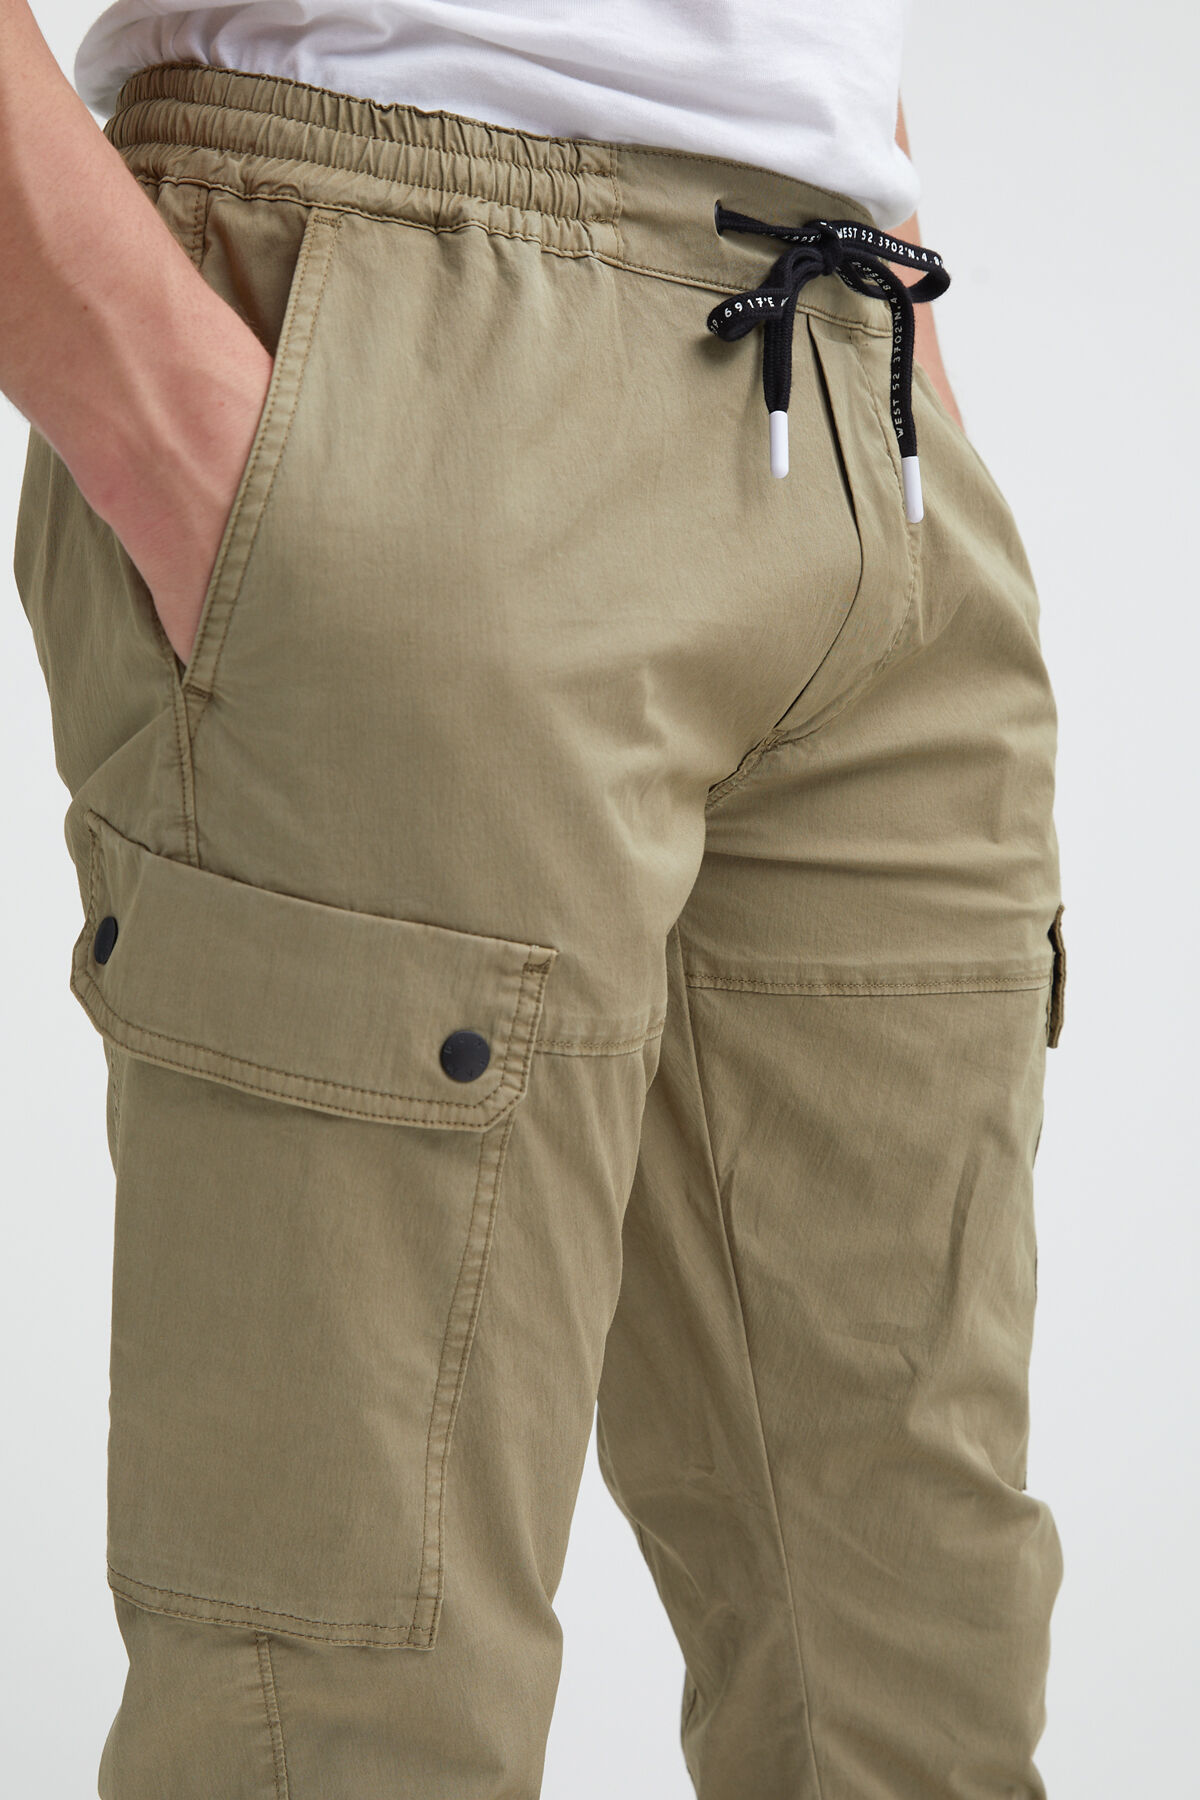 KINETIC CARGO Cotton & Nylon Blend - Tapered Fit